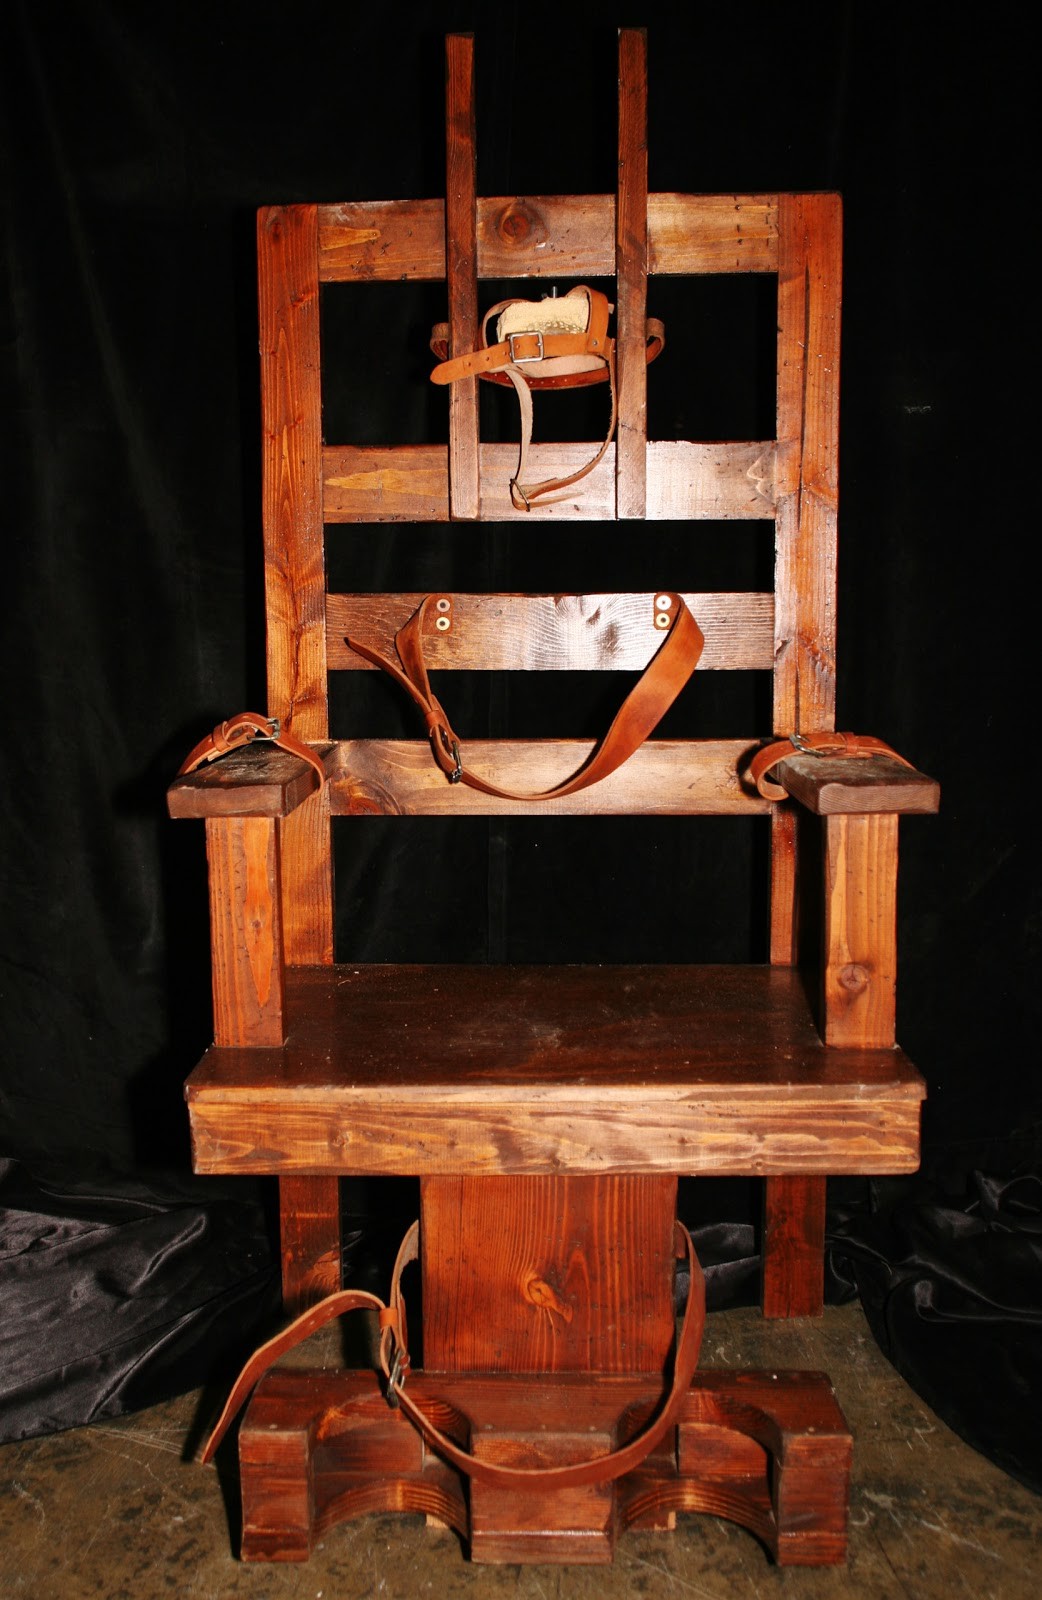 Electric Chair Execution Gone Wrong Design Presentation The Voice Of One Crying Out In Suburbia Pro Life On